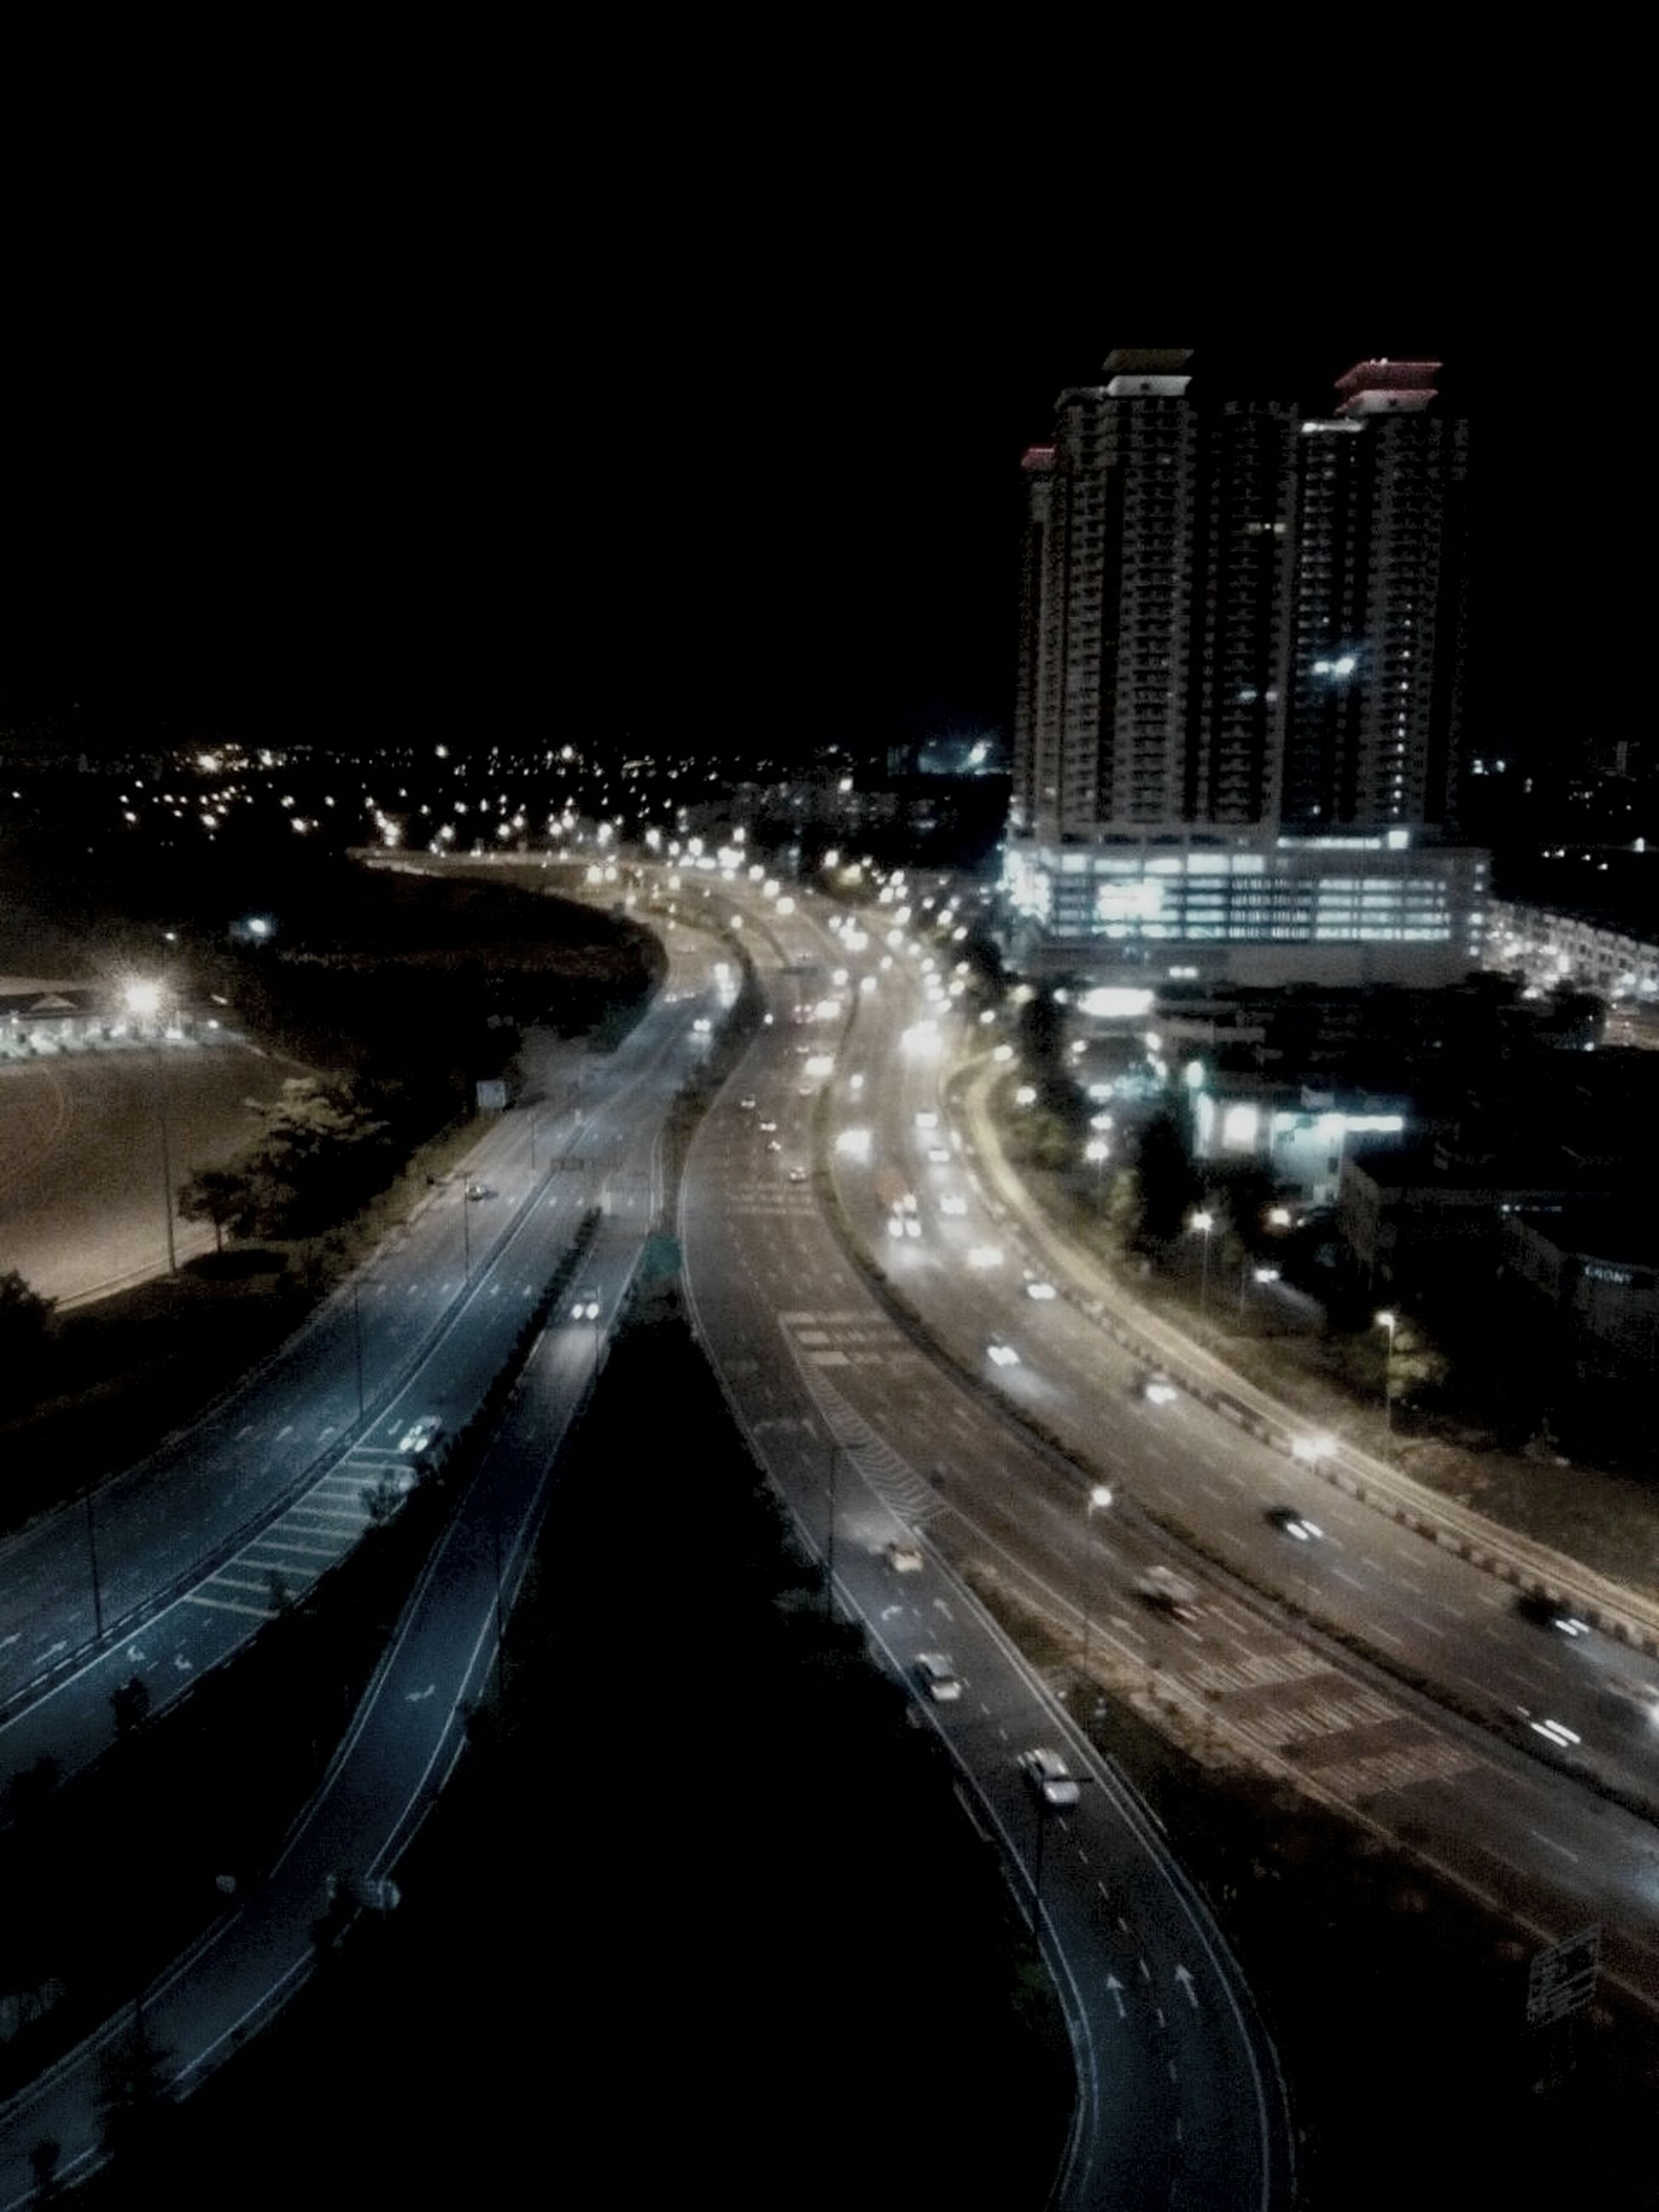 night, illuminated, city, building exterior, architecture, built structure, transportation, road, high angle view, street, cityscape, long exposure, street light, city life, motion, light trail, car, skyscraper, city street, traffic